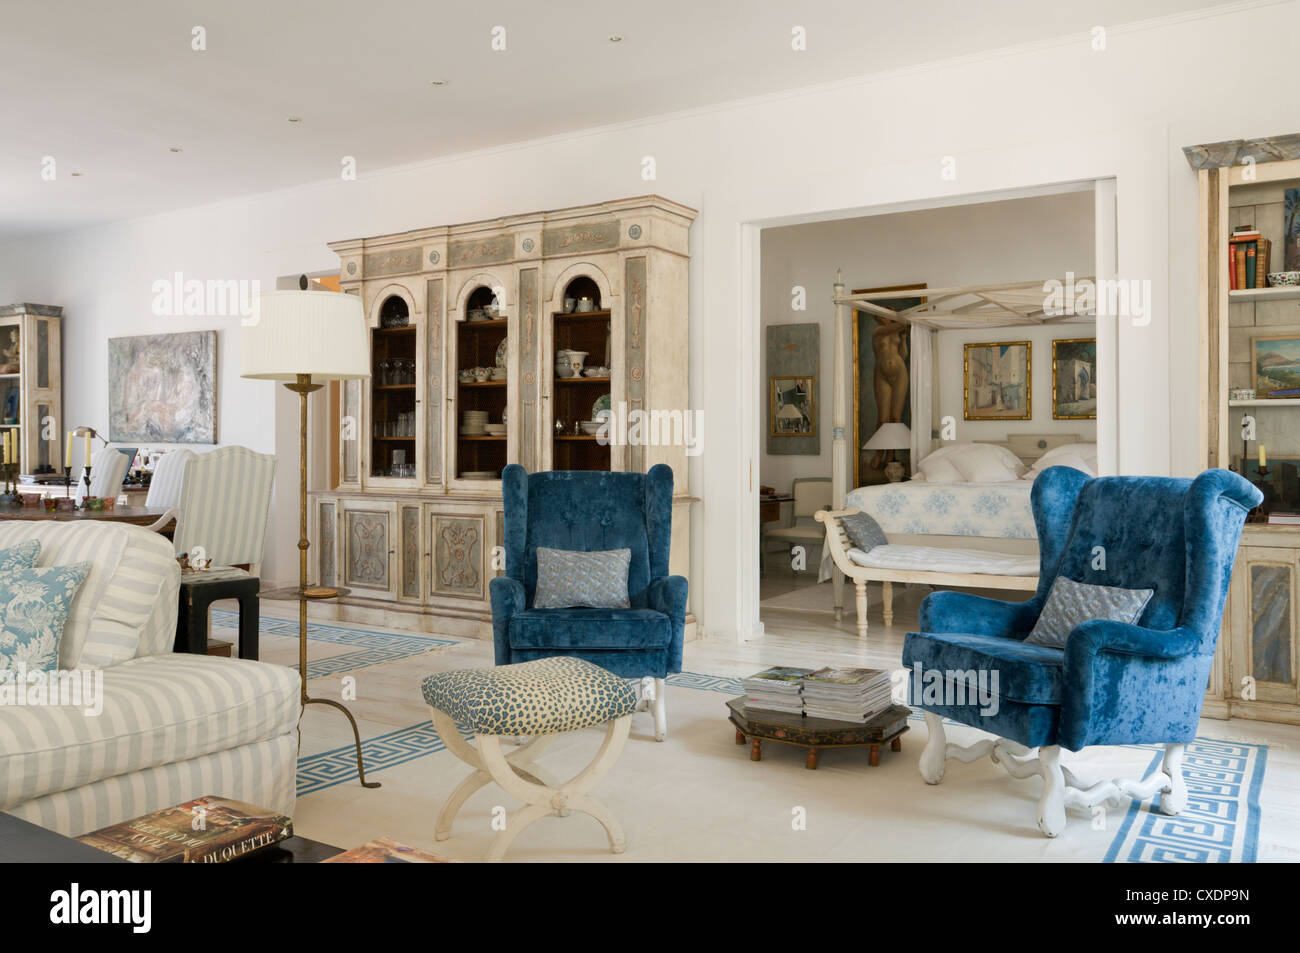 colonial living room with blue chairs in Mallorca Stock Photo ...